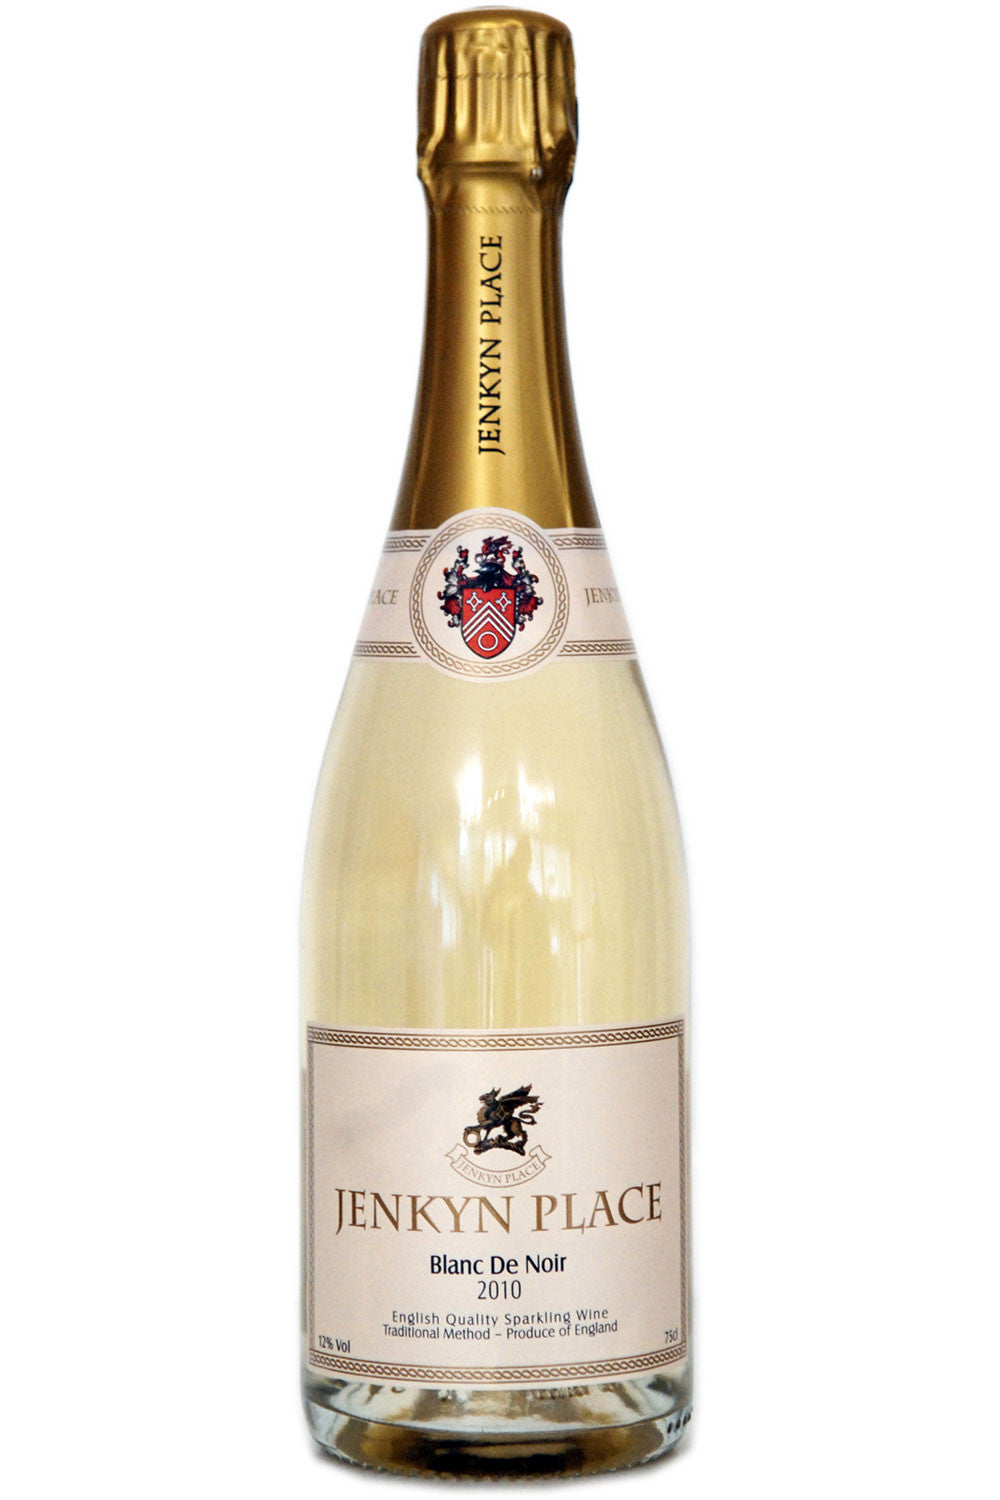 Jenkyn Place Blanc de Noir 2010 - Hawkins Bros. Fine English Wines